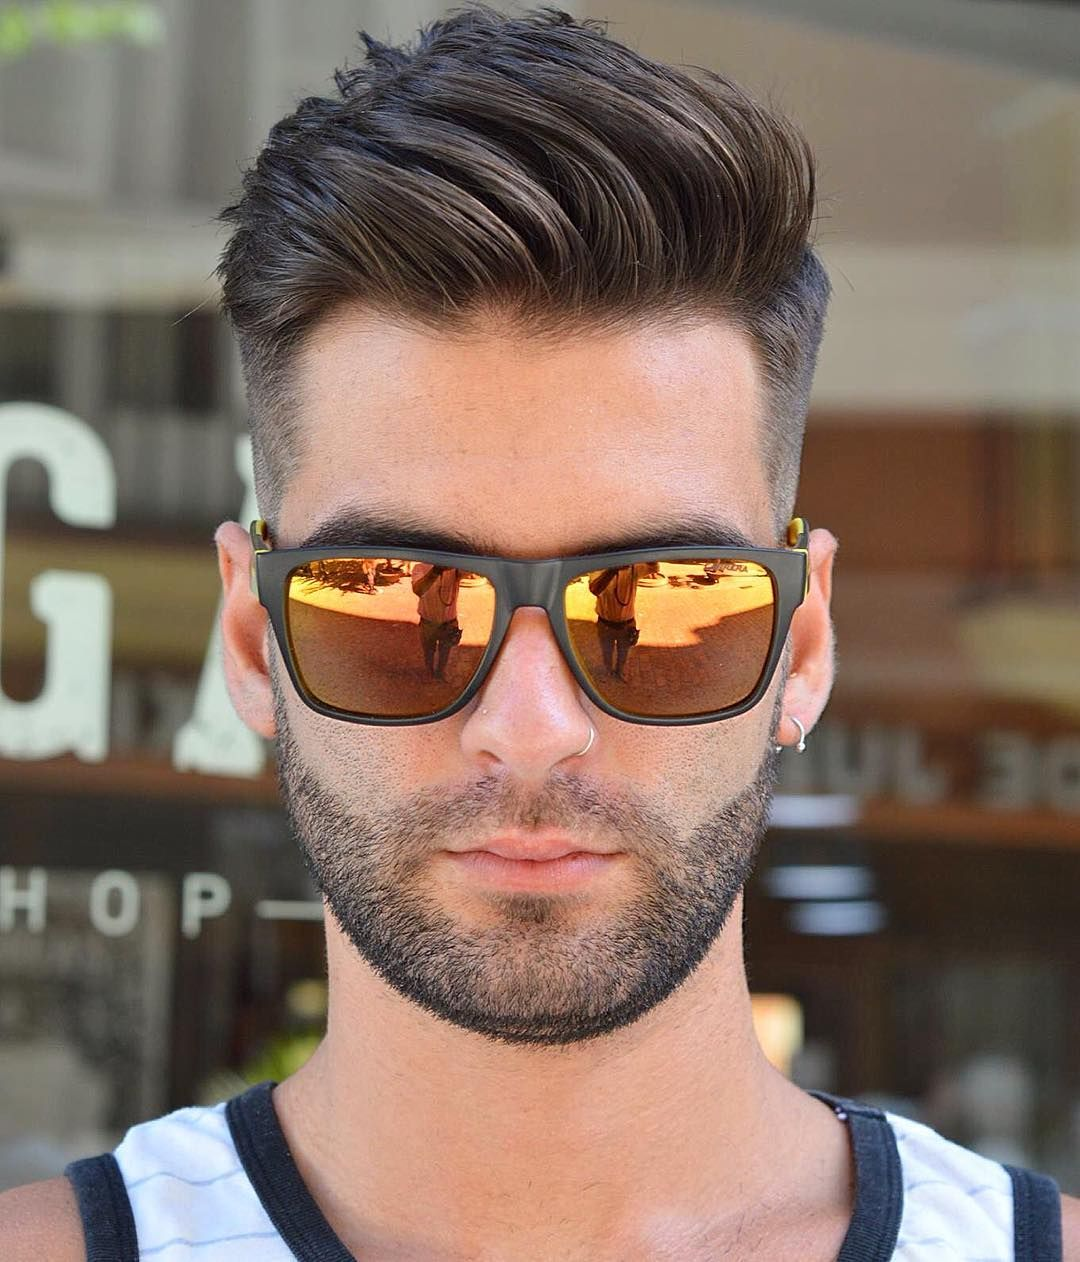 Oblong face haircut men  new menus hairstyles for  top picks  haircuts hair